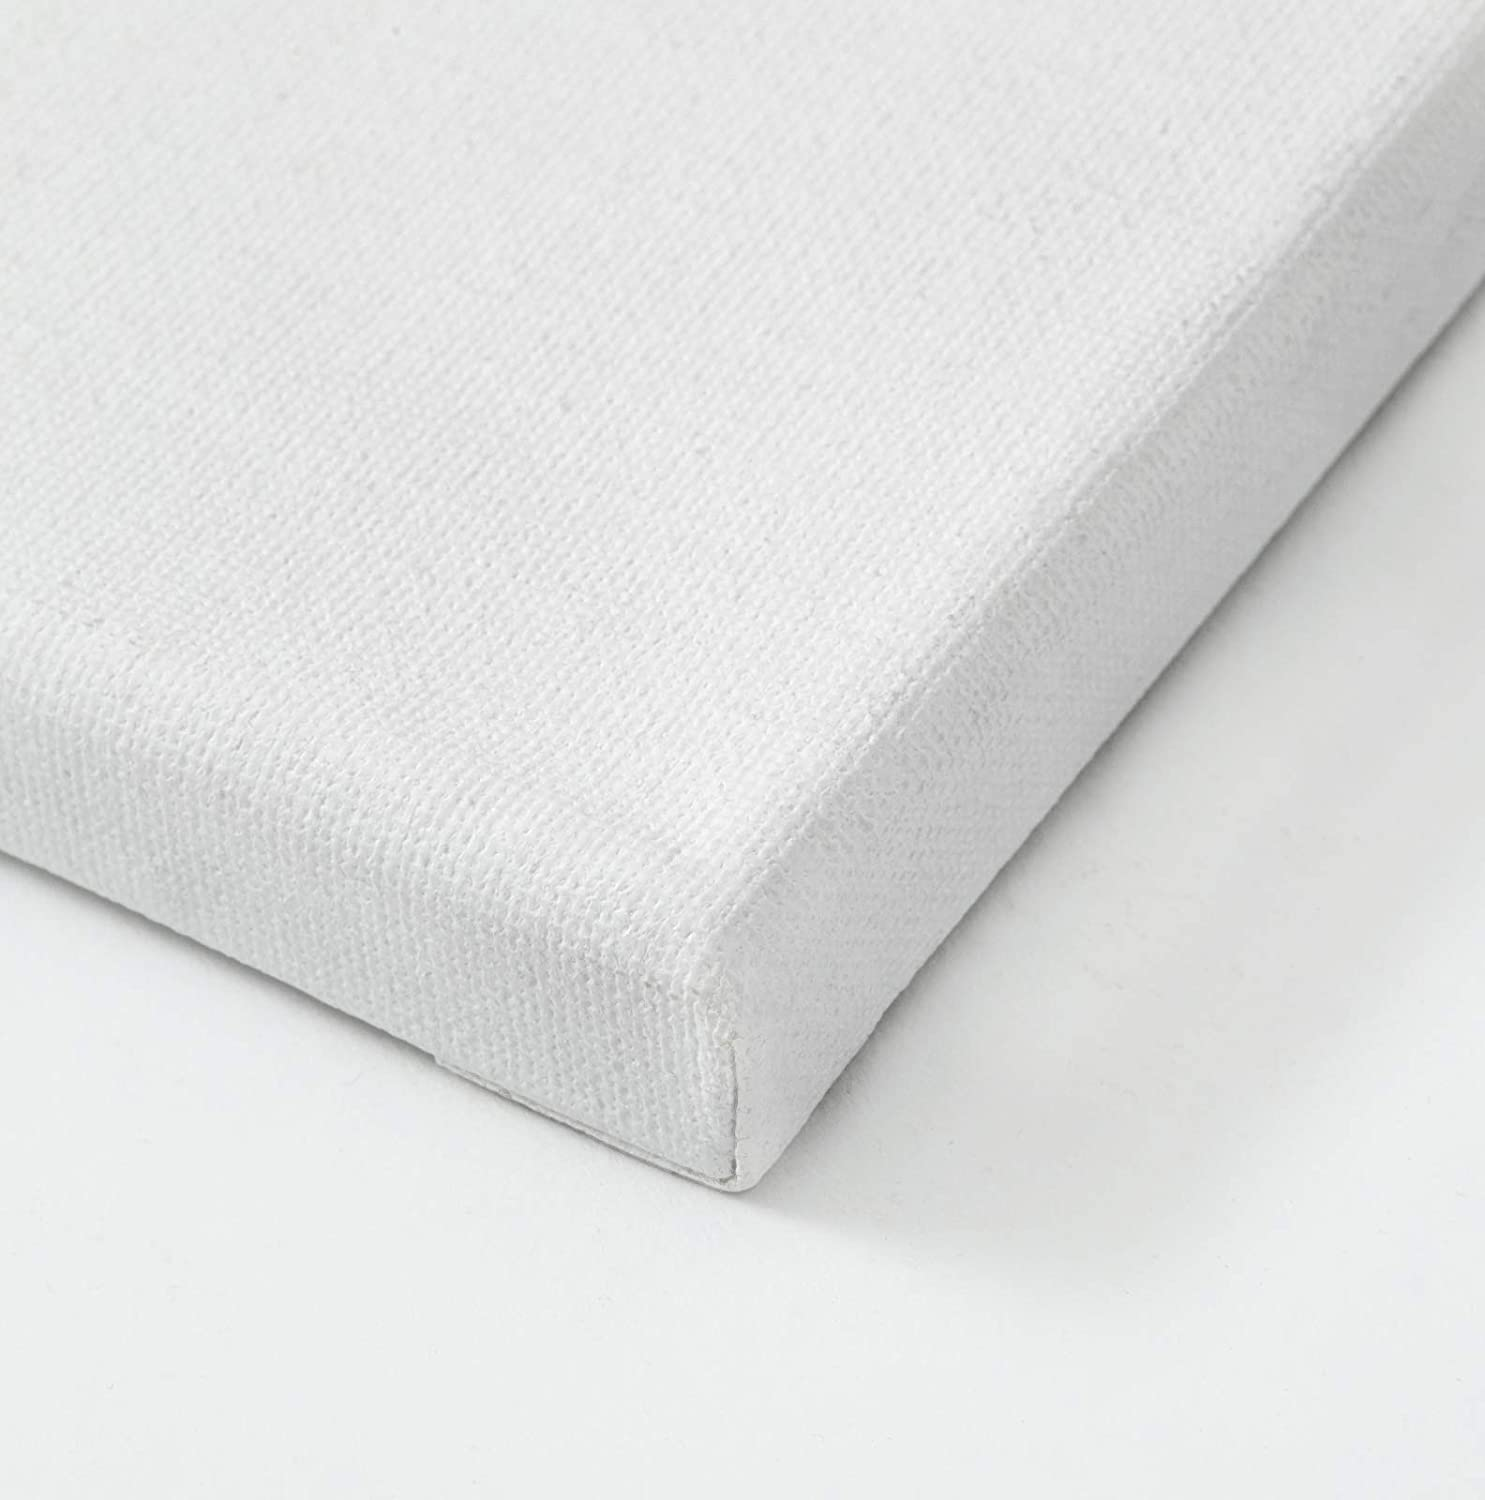 miniature 40 - Americanflat Stretched Canvas in White 100% Cotton Wooden Frames & Acid Free